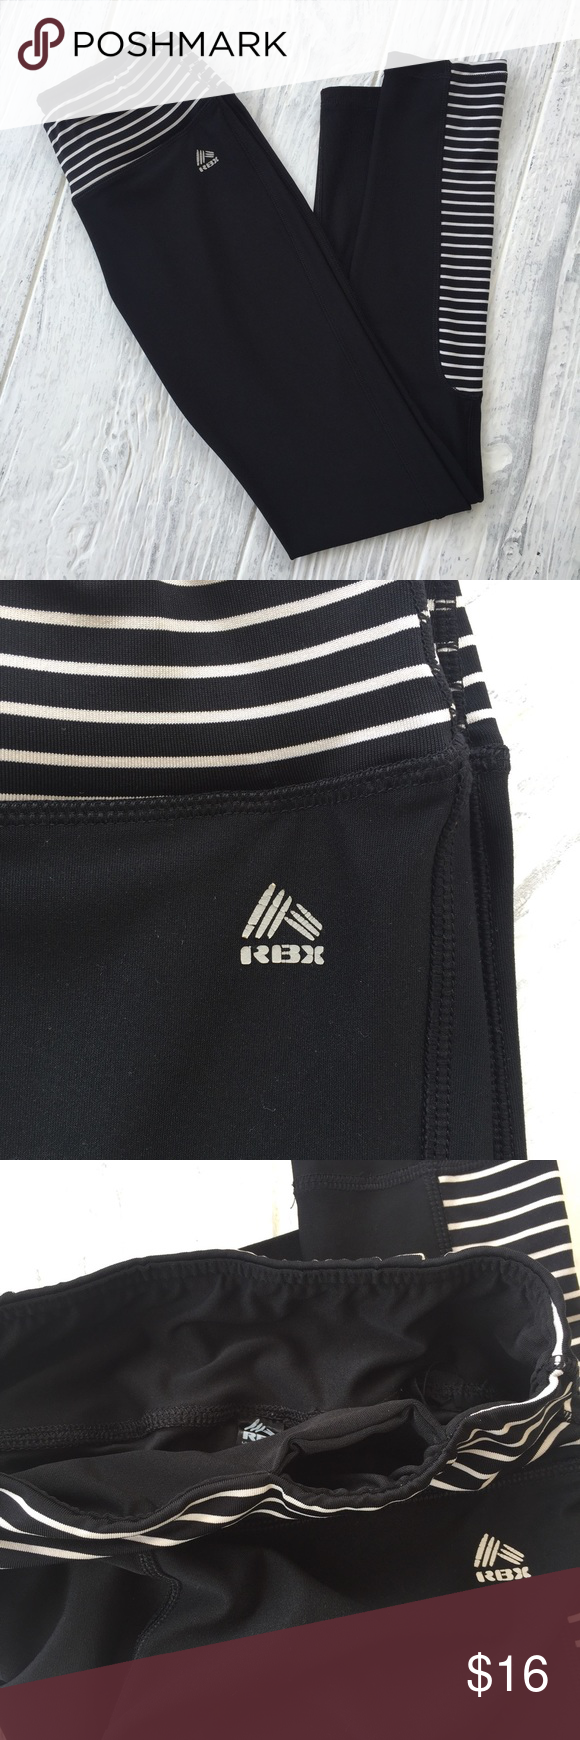 RBX Athletic Leggings RBX full length athletic legging, size small. Black with white stripe accents and small pocket inside the waistband. Slight cracking on RBX logo as shown in photo. Excellent used condition, no piling. RBX Pants